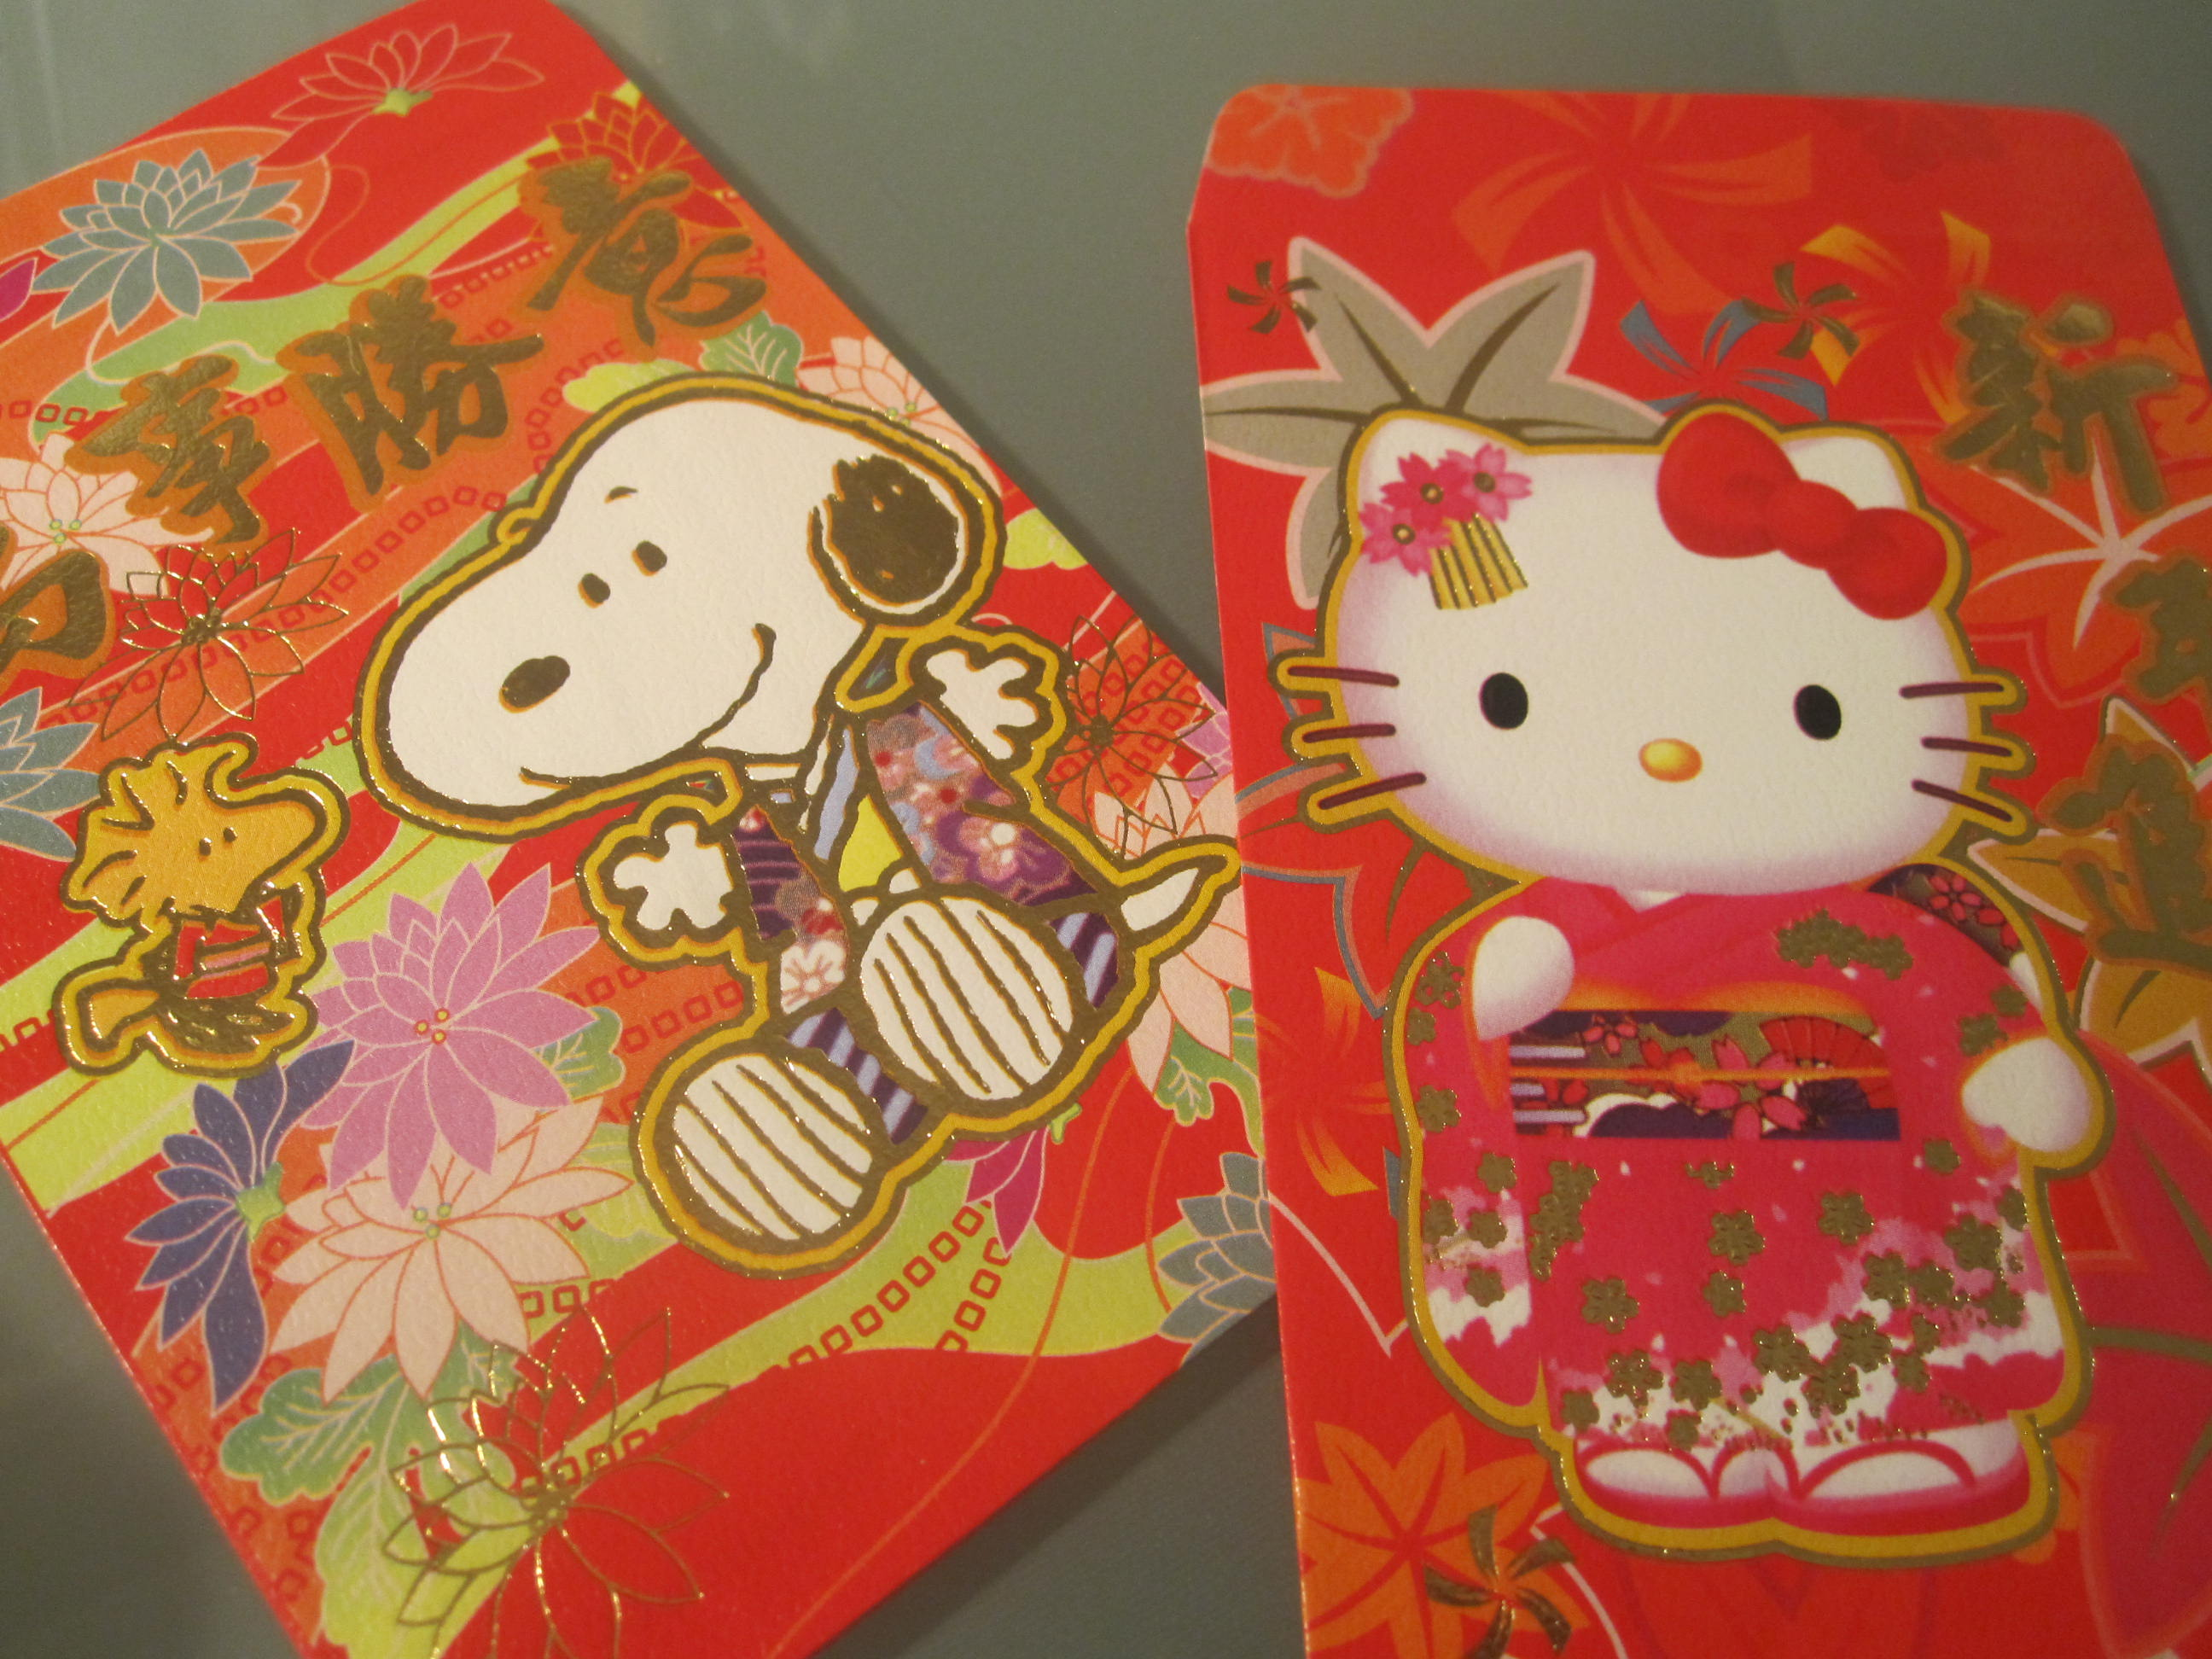 according to wikipedia red envelopes are presented on lunar new year from married elders to the unmarried or children and contain gifts of money - Chinese New Year Red Envelope